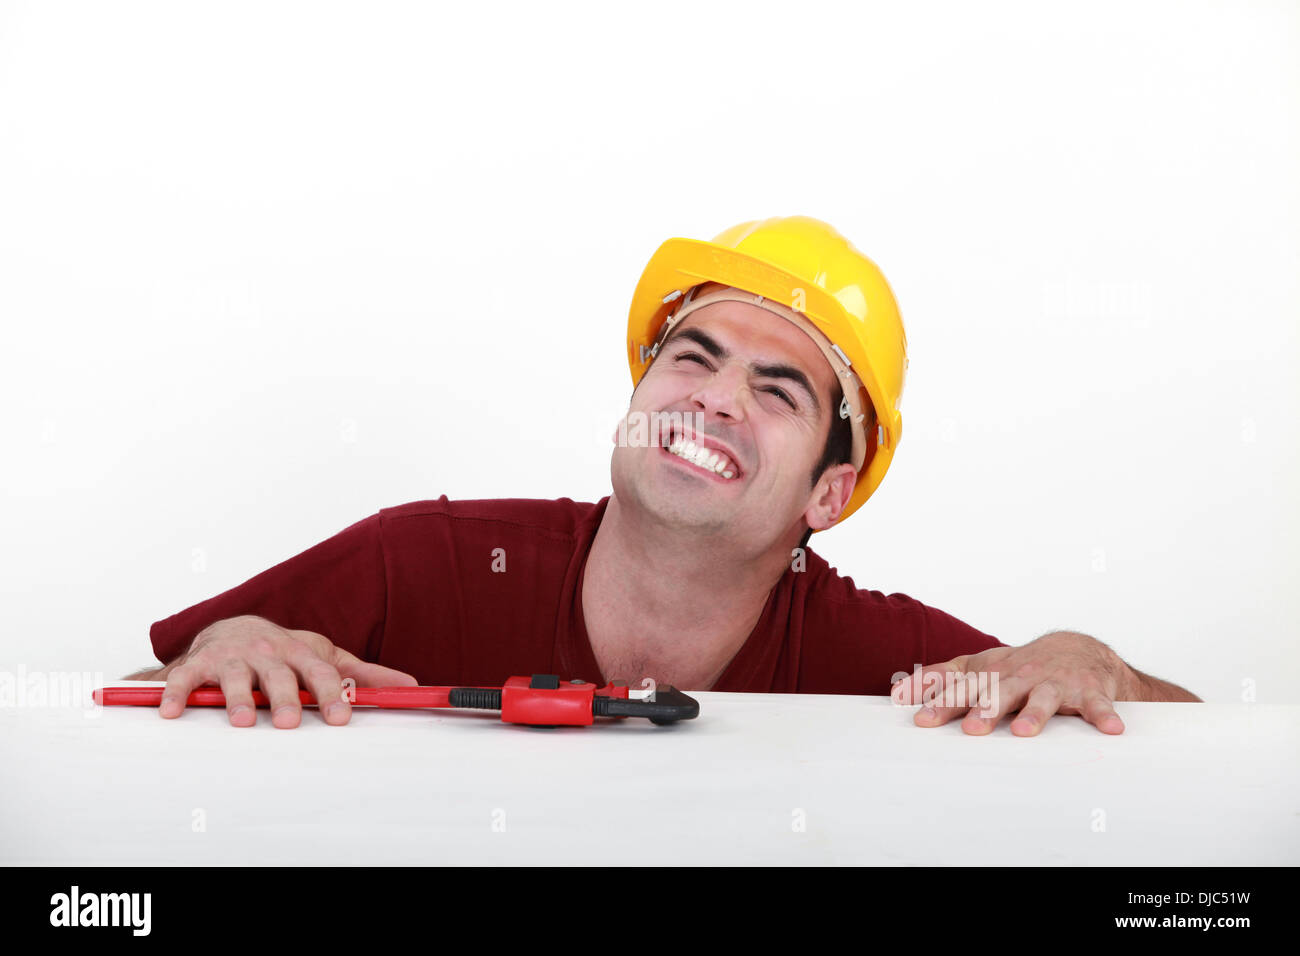 Grunting tradesman trying to lift himself up onto a ledge - Stock Image